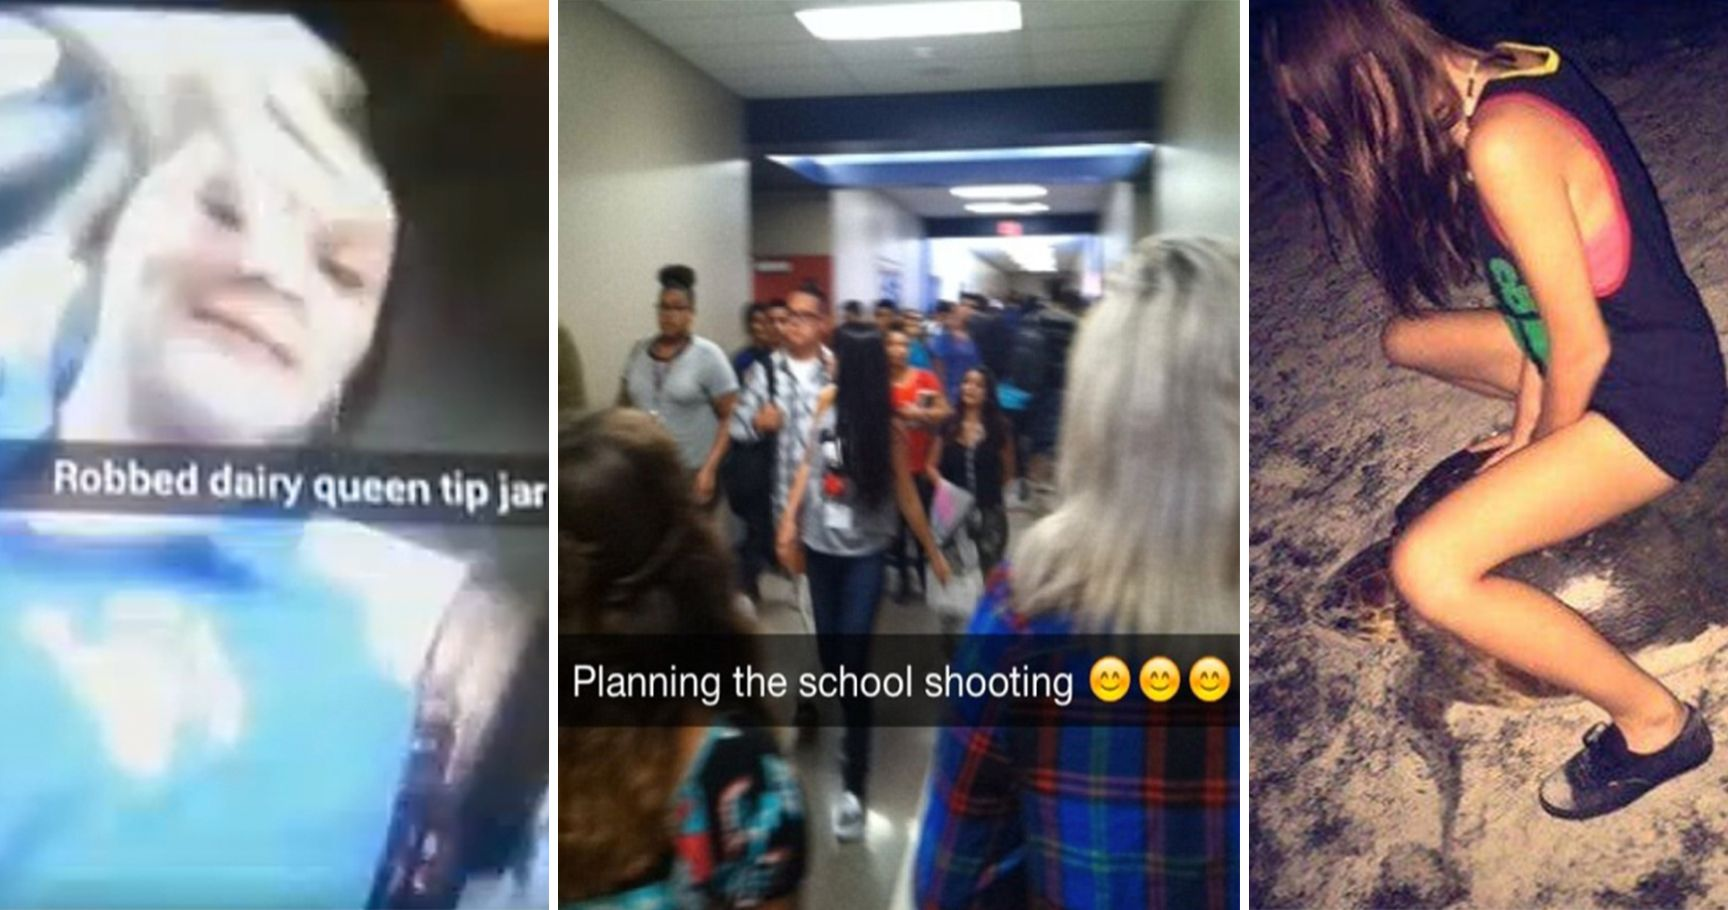 15 Appalling Snapchats That Got These Idiots Arrested